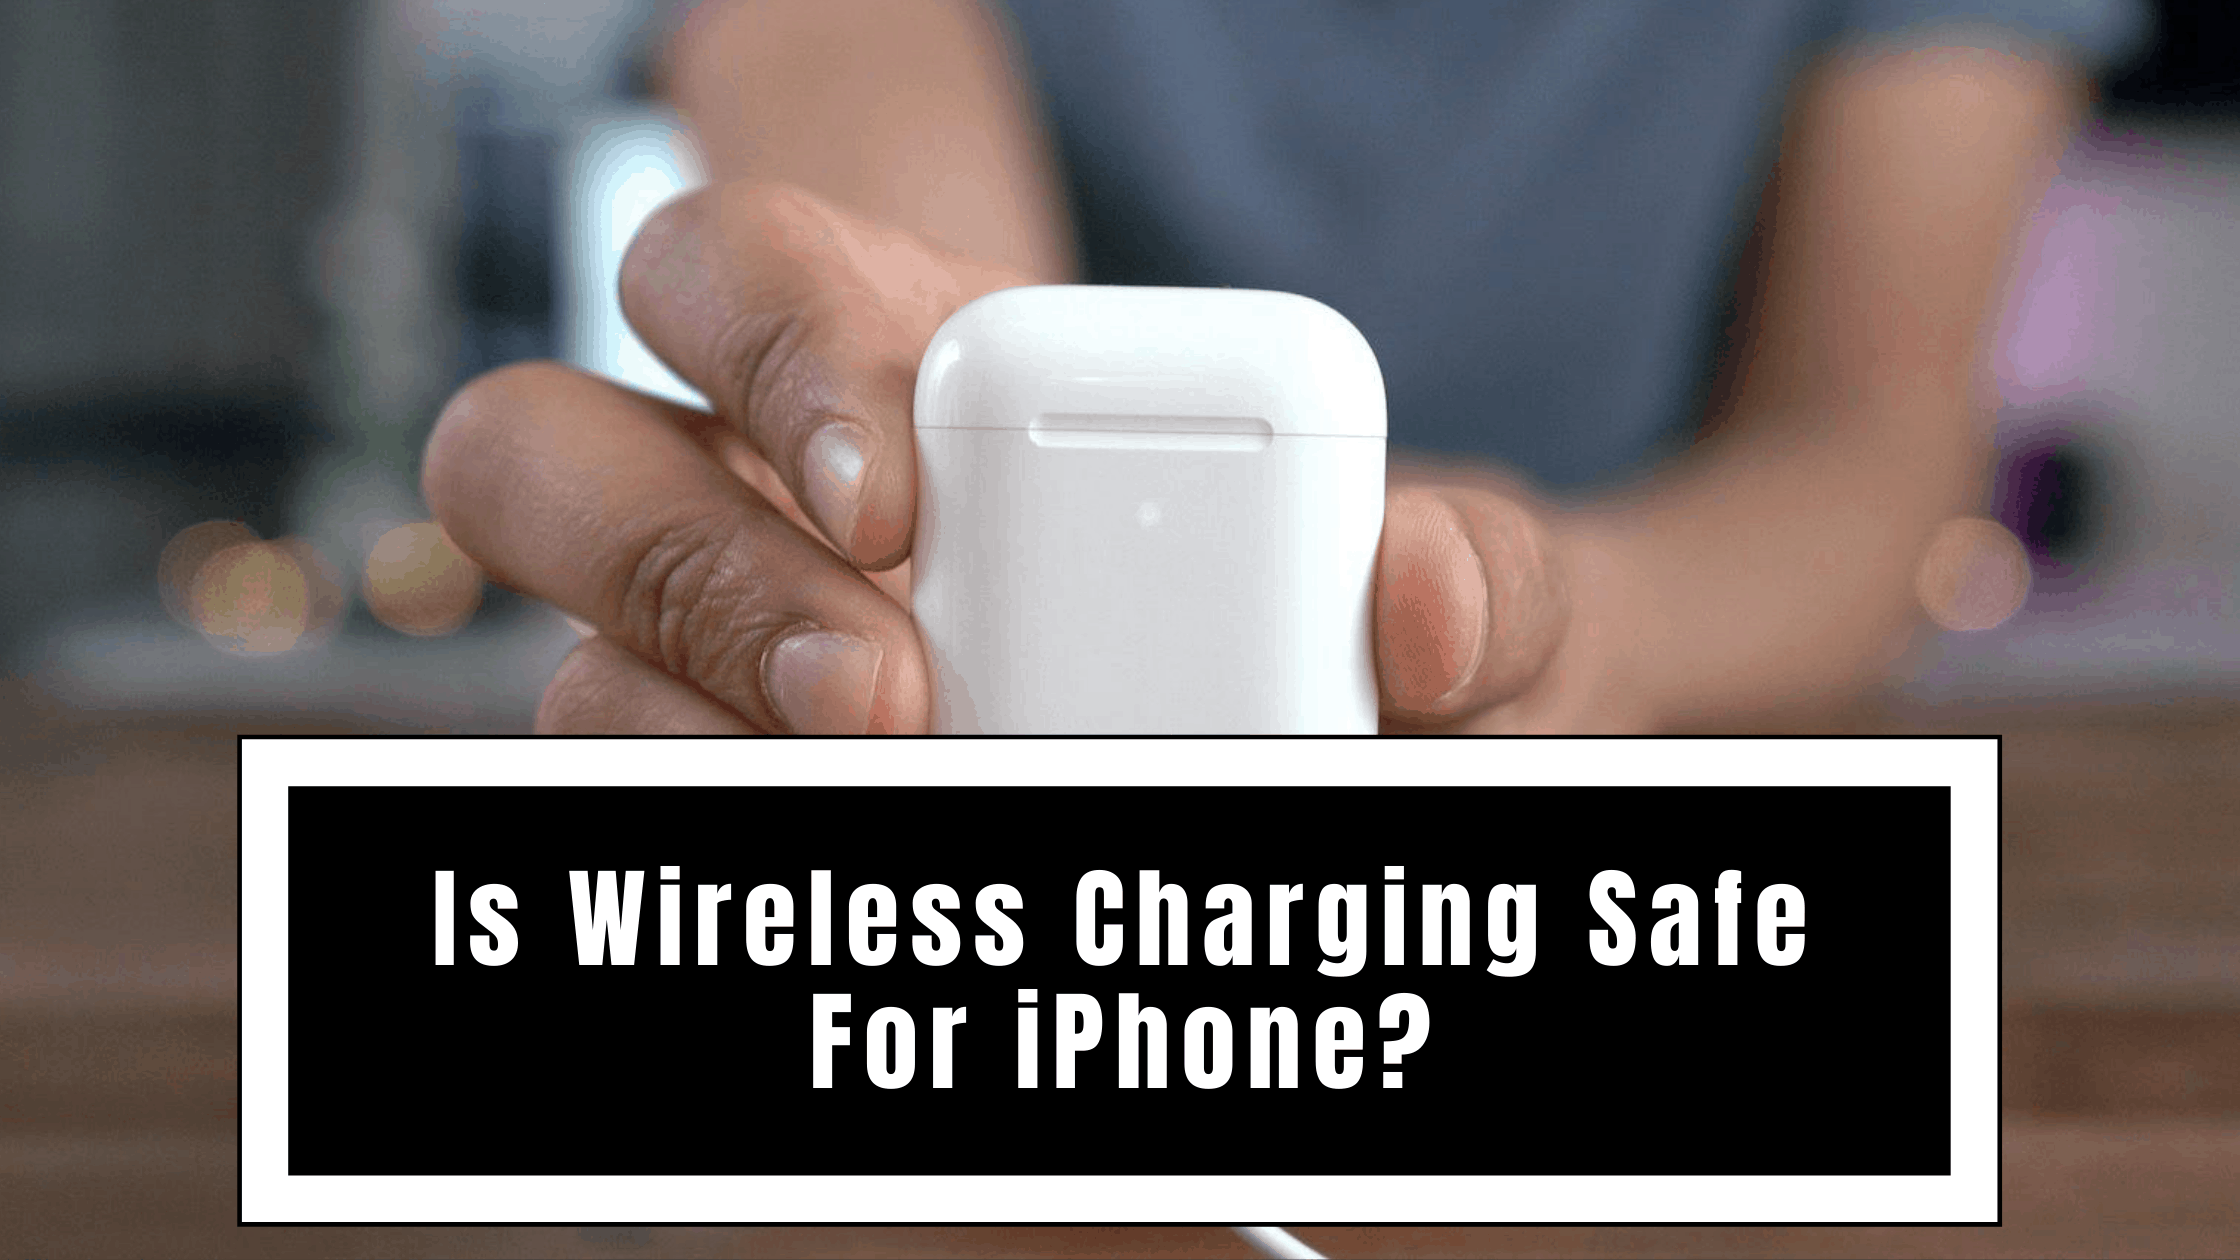 Is Wireless Charging Safe For iPhone